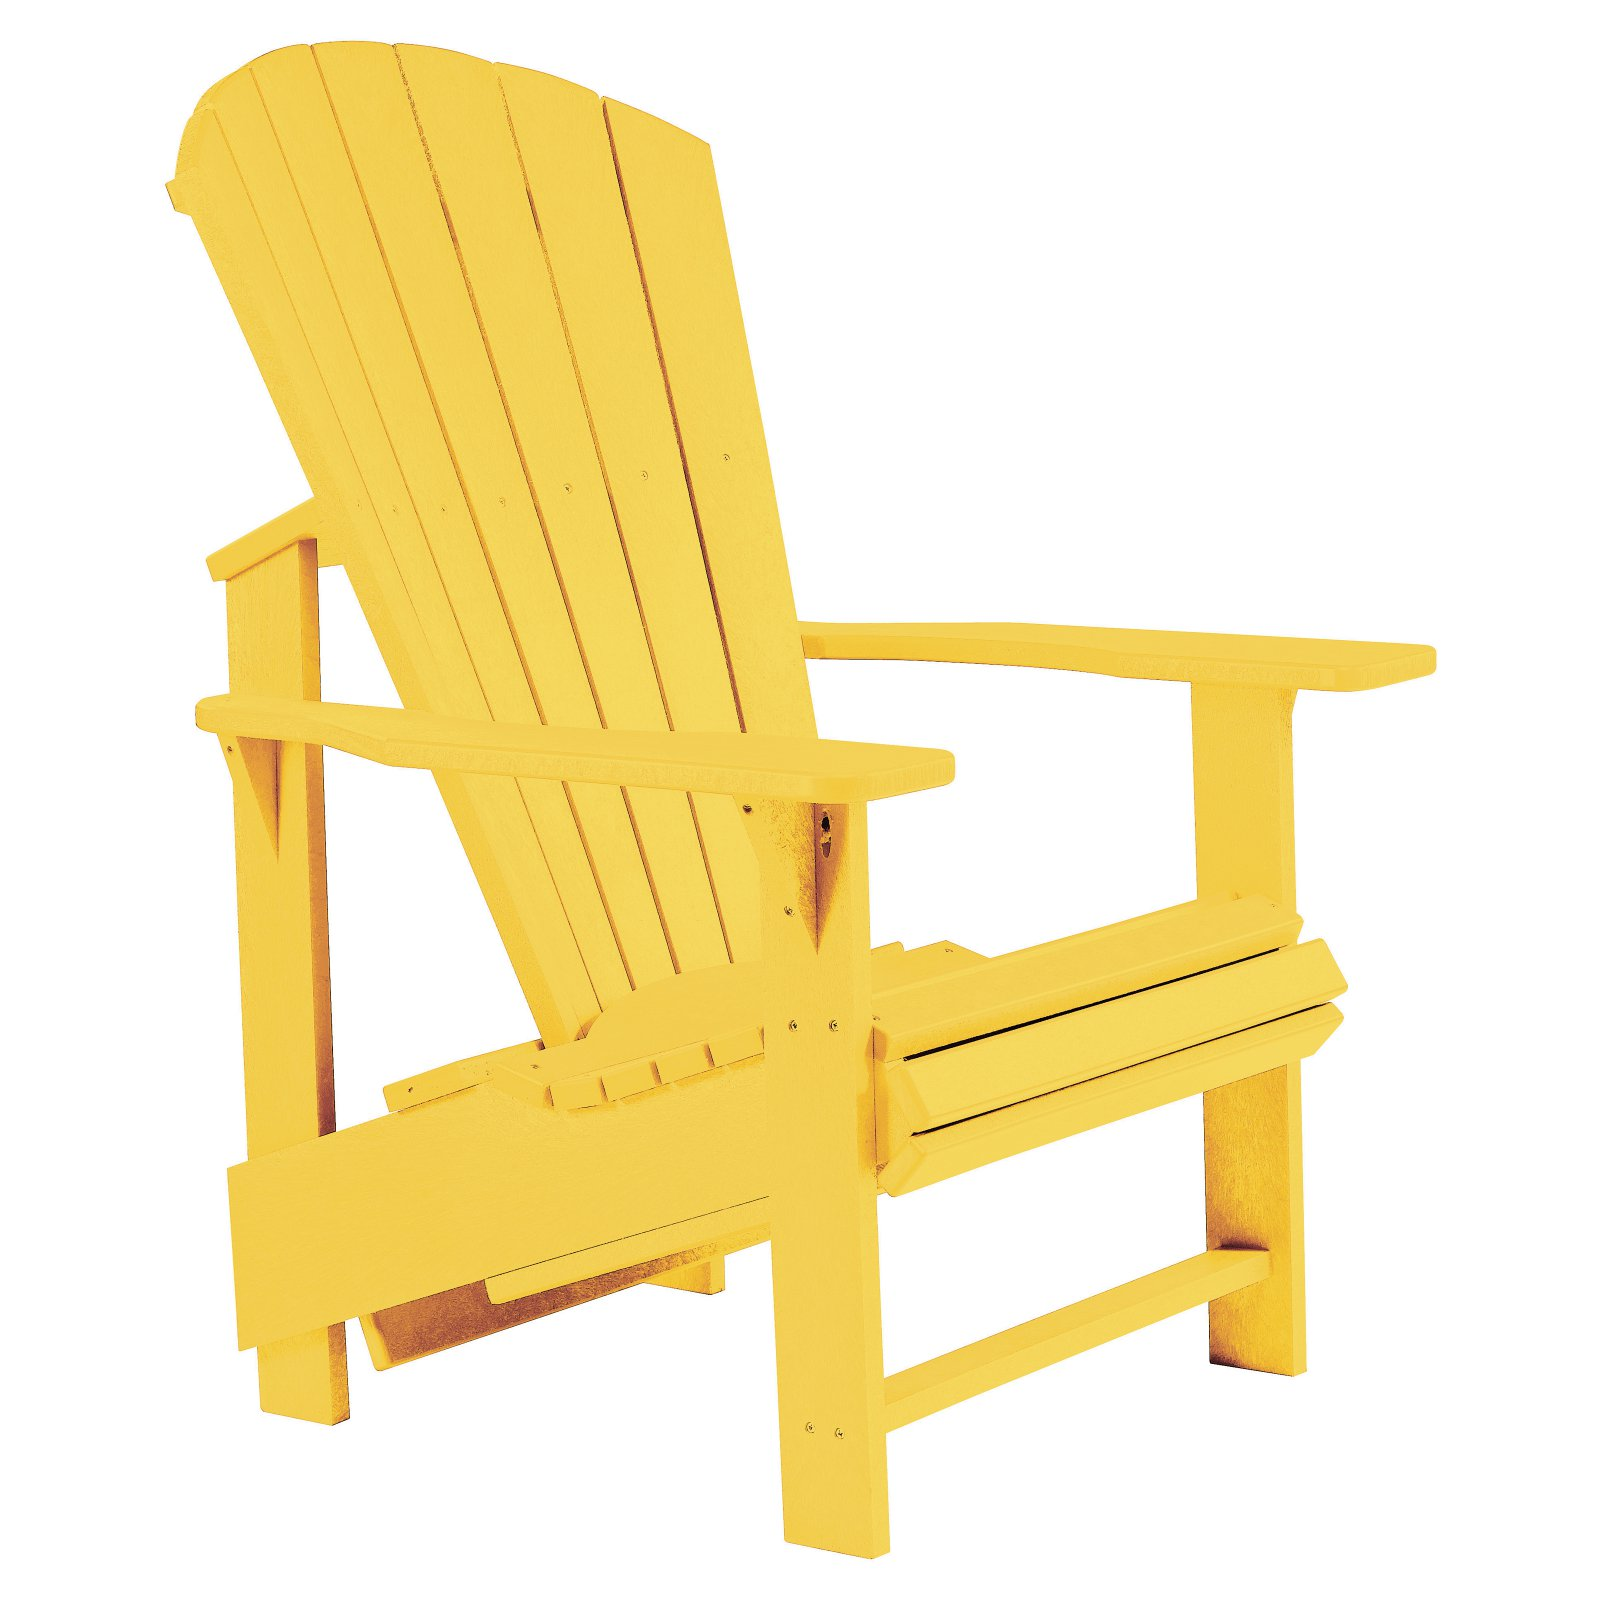 CR Plastic Generations Upright Adirondack Chair by Overstock